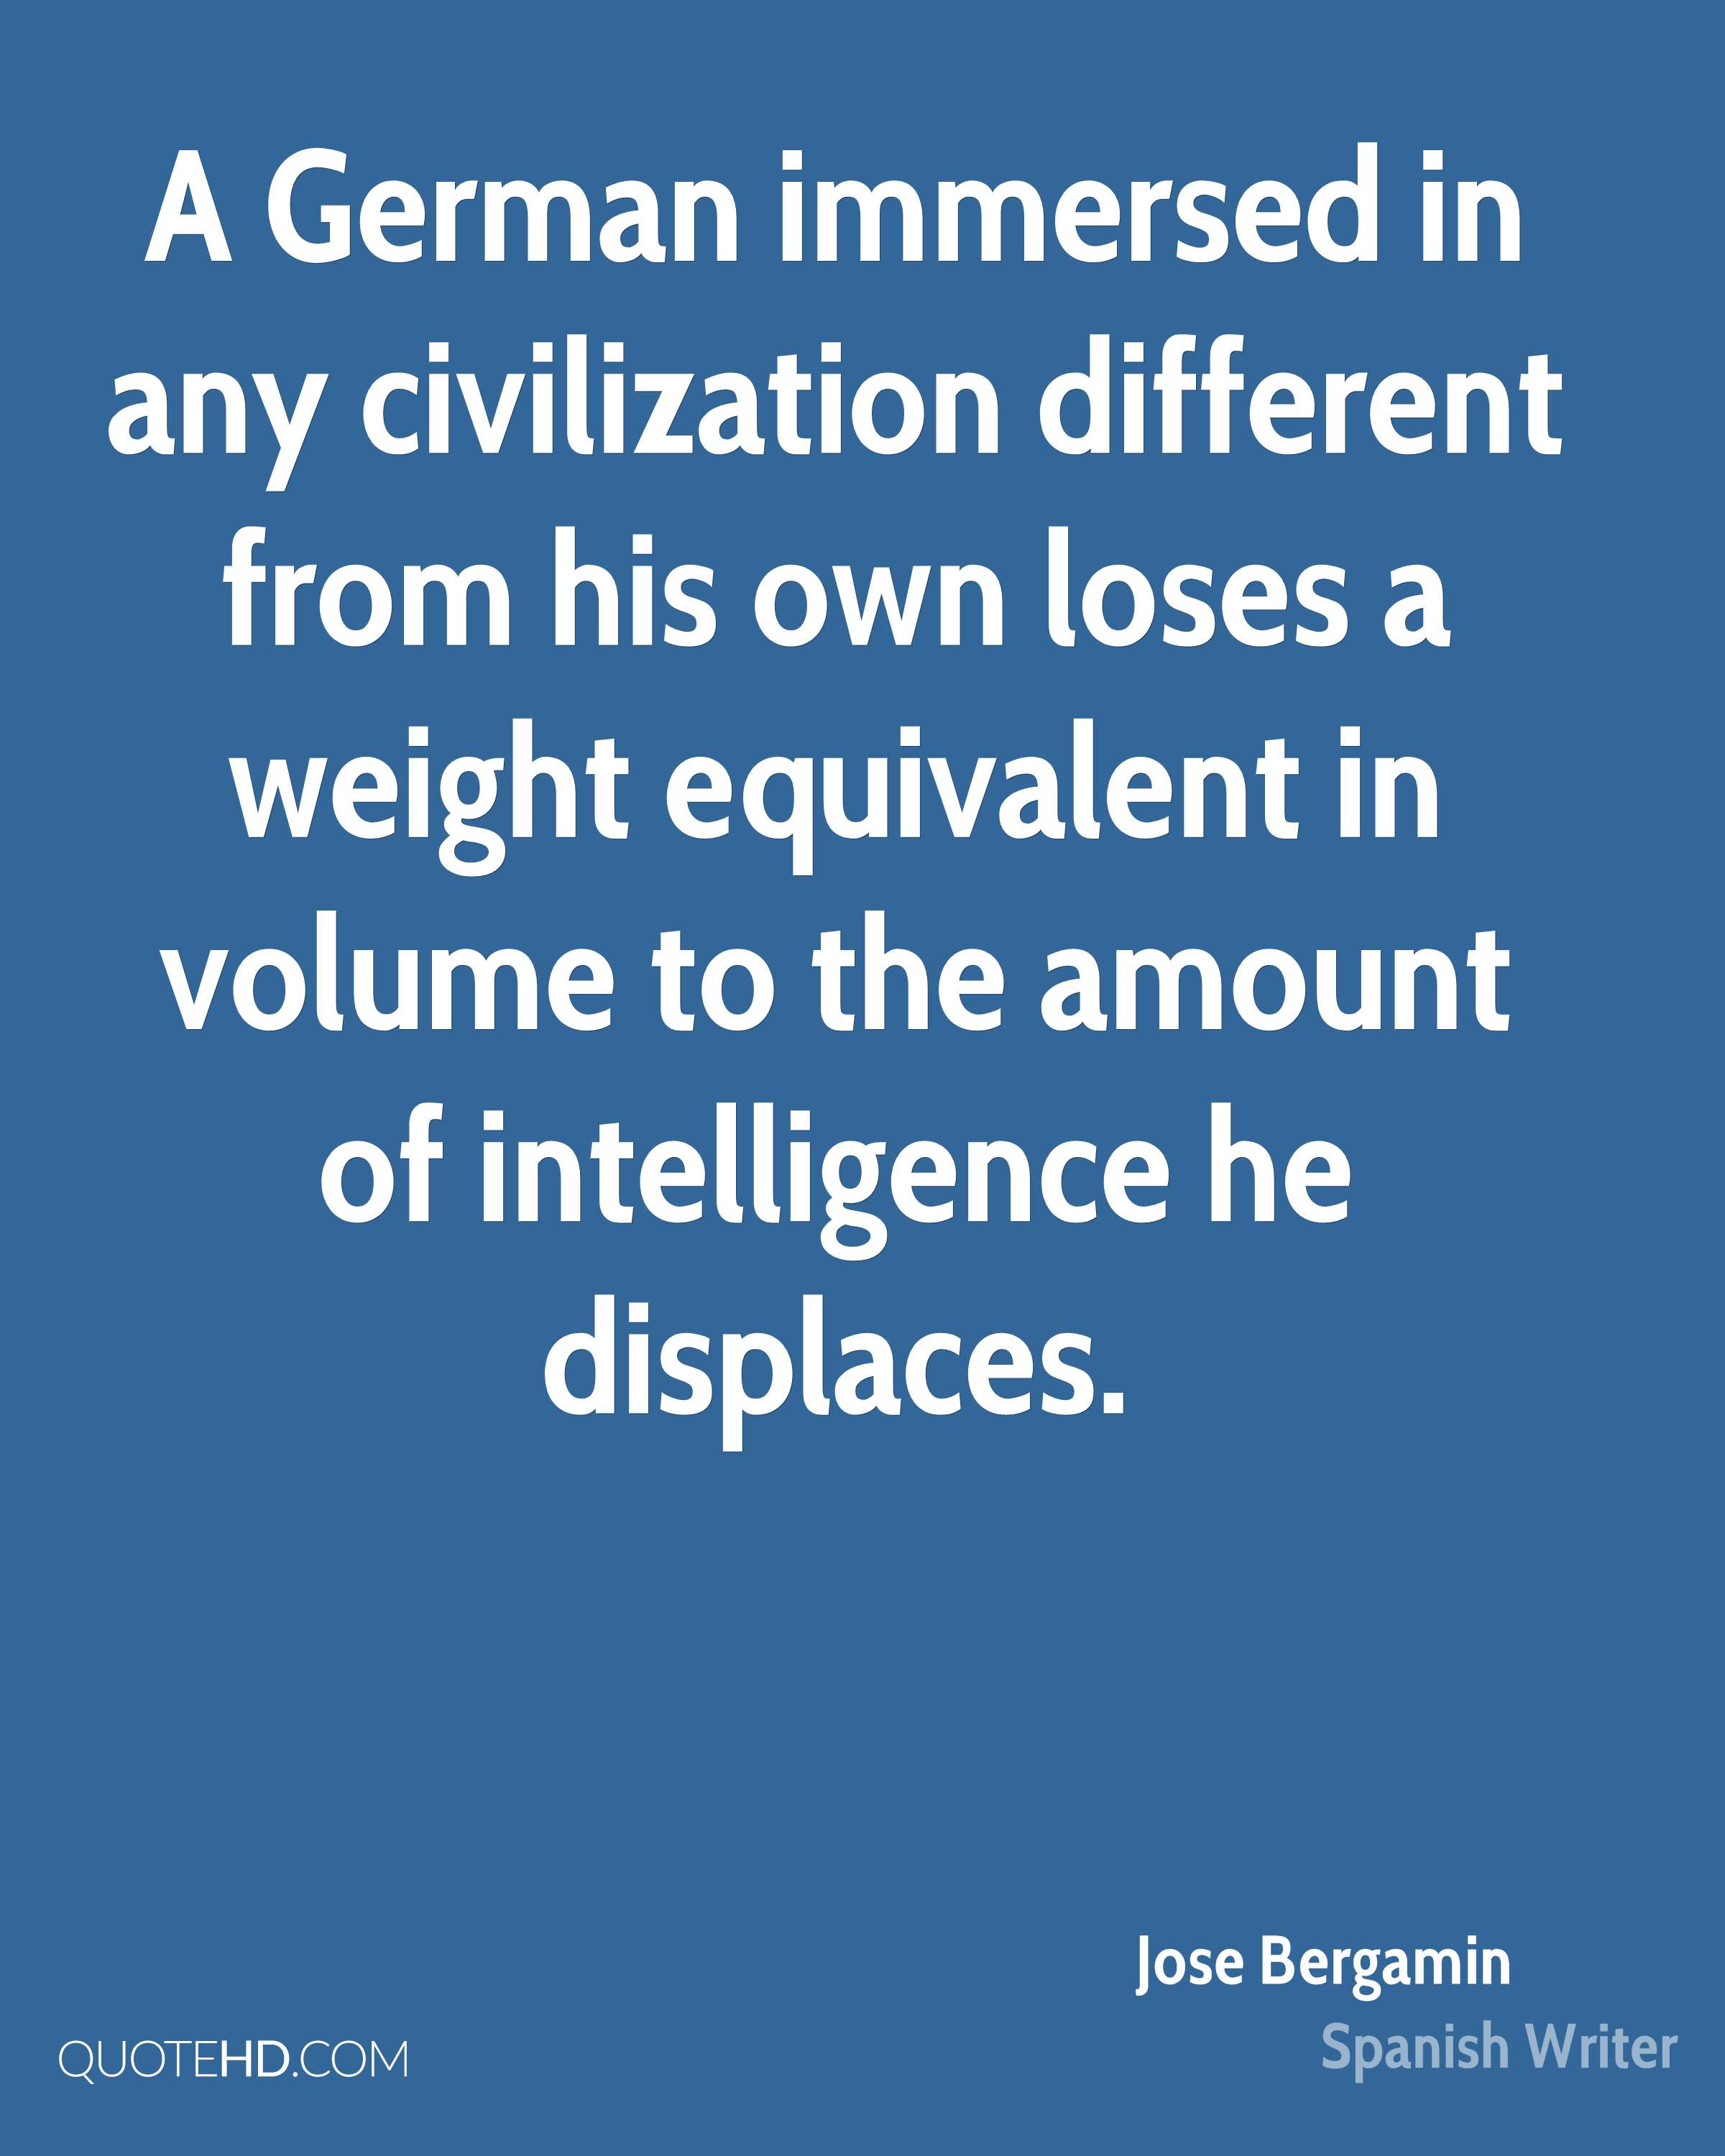 A German immersed in any civilization different from his own loses a weight equivalent in volume to the amount of intelligence he displaces.